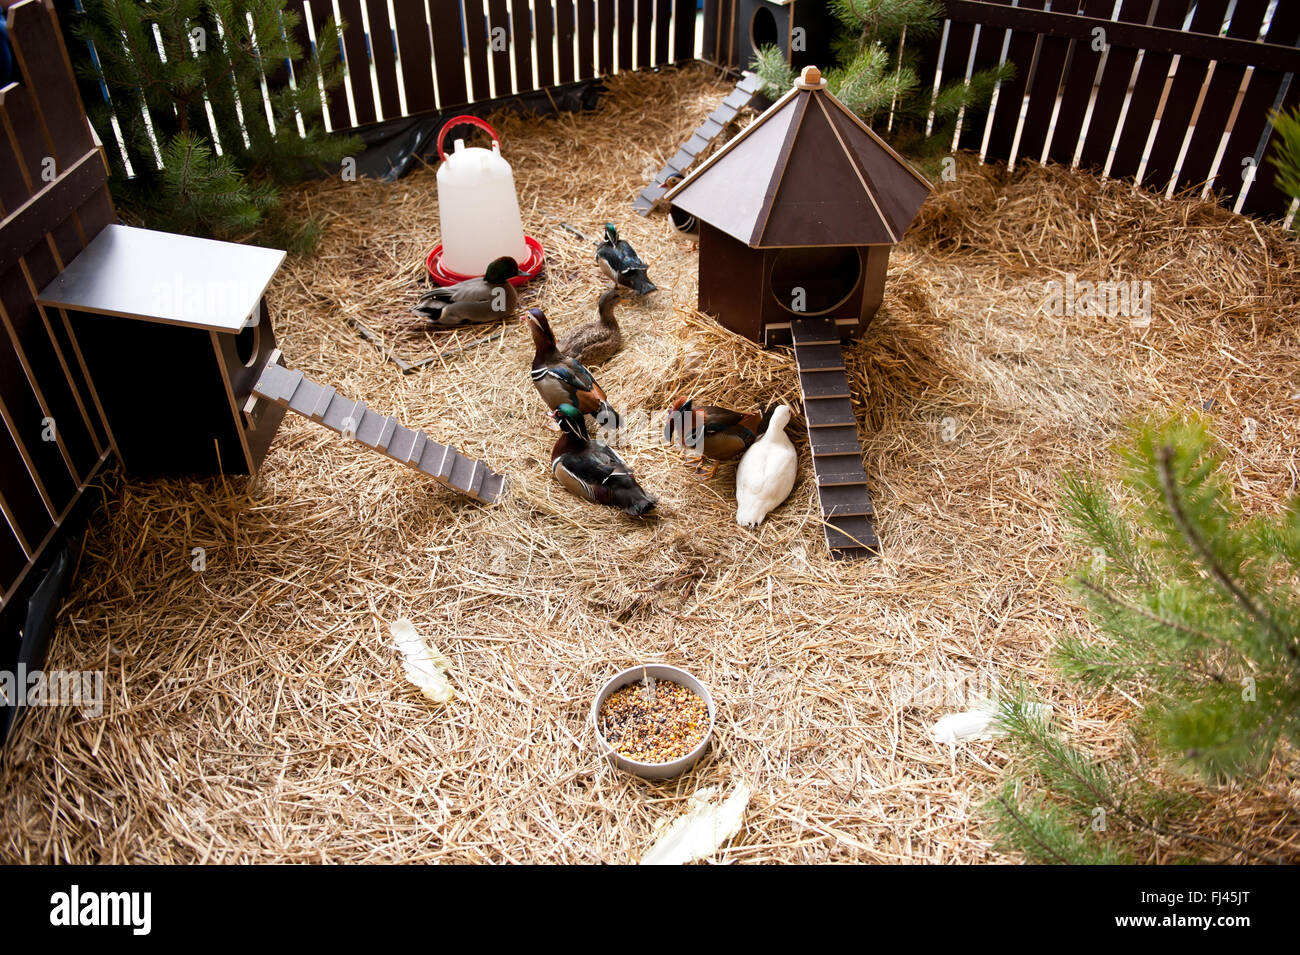 ducks flock in enclosure fence at ornamental chickens show in